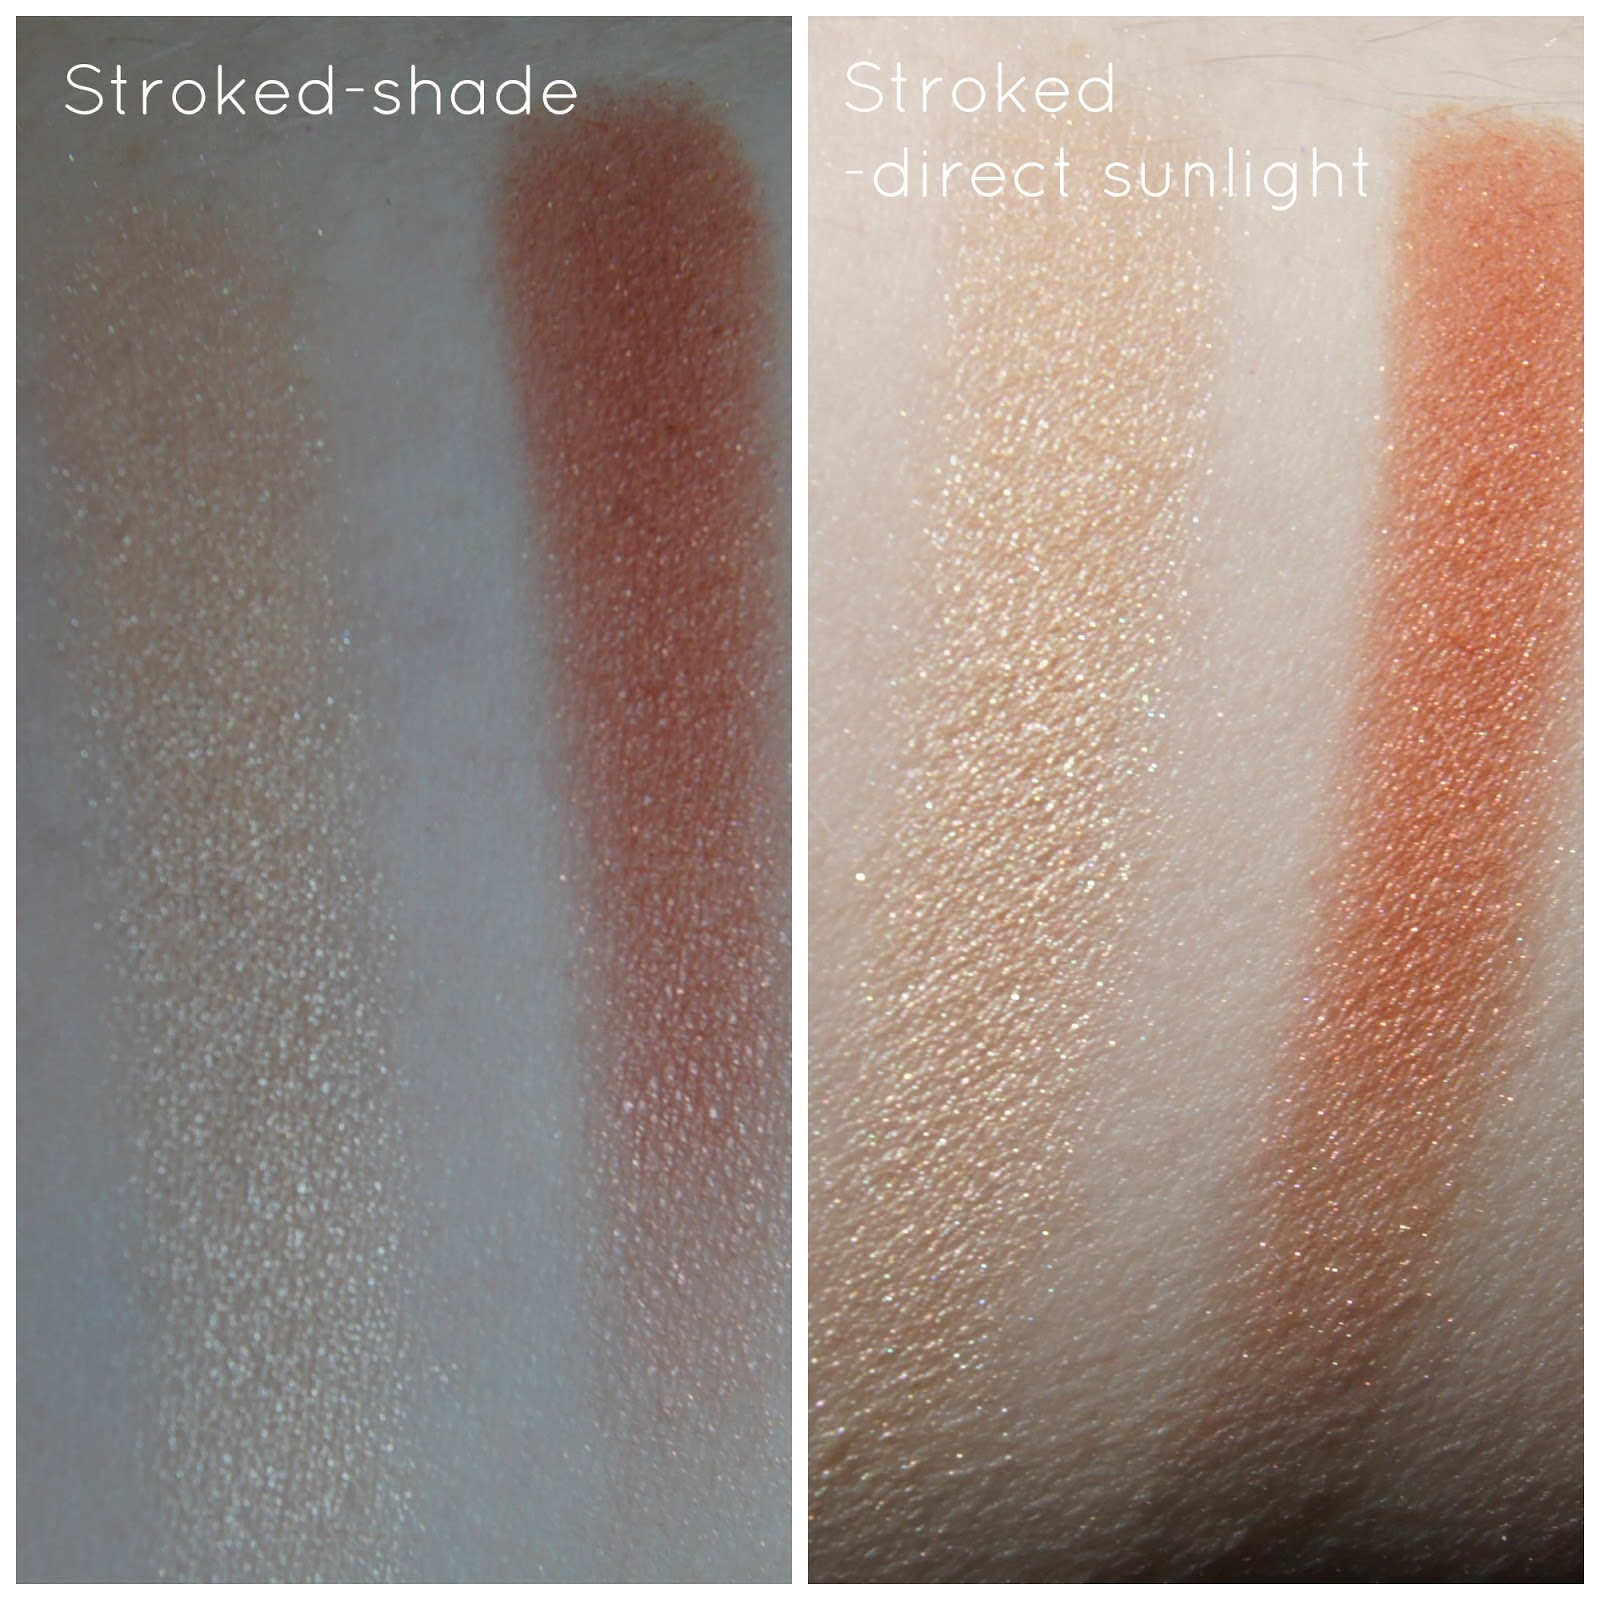 Tom Ford Fall 2014 Stroked swatches